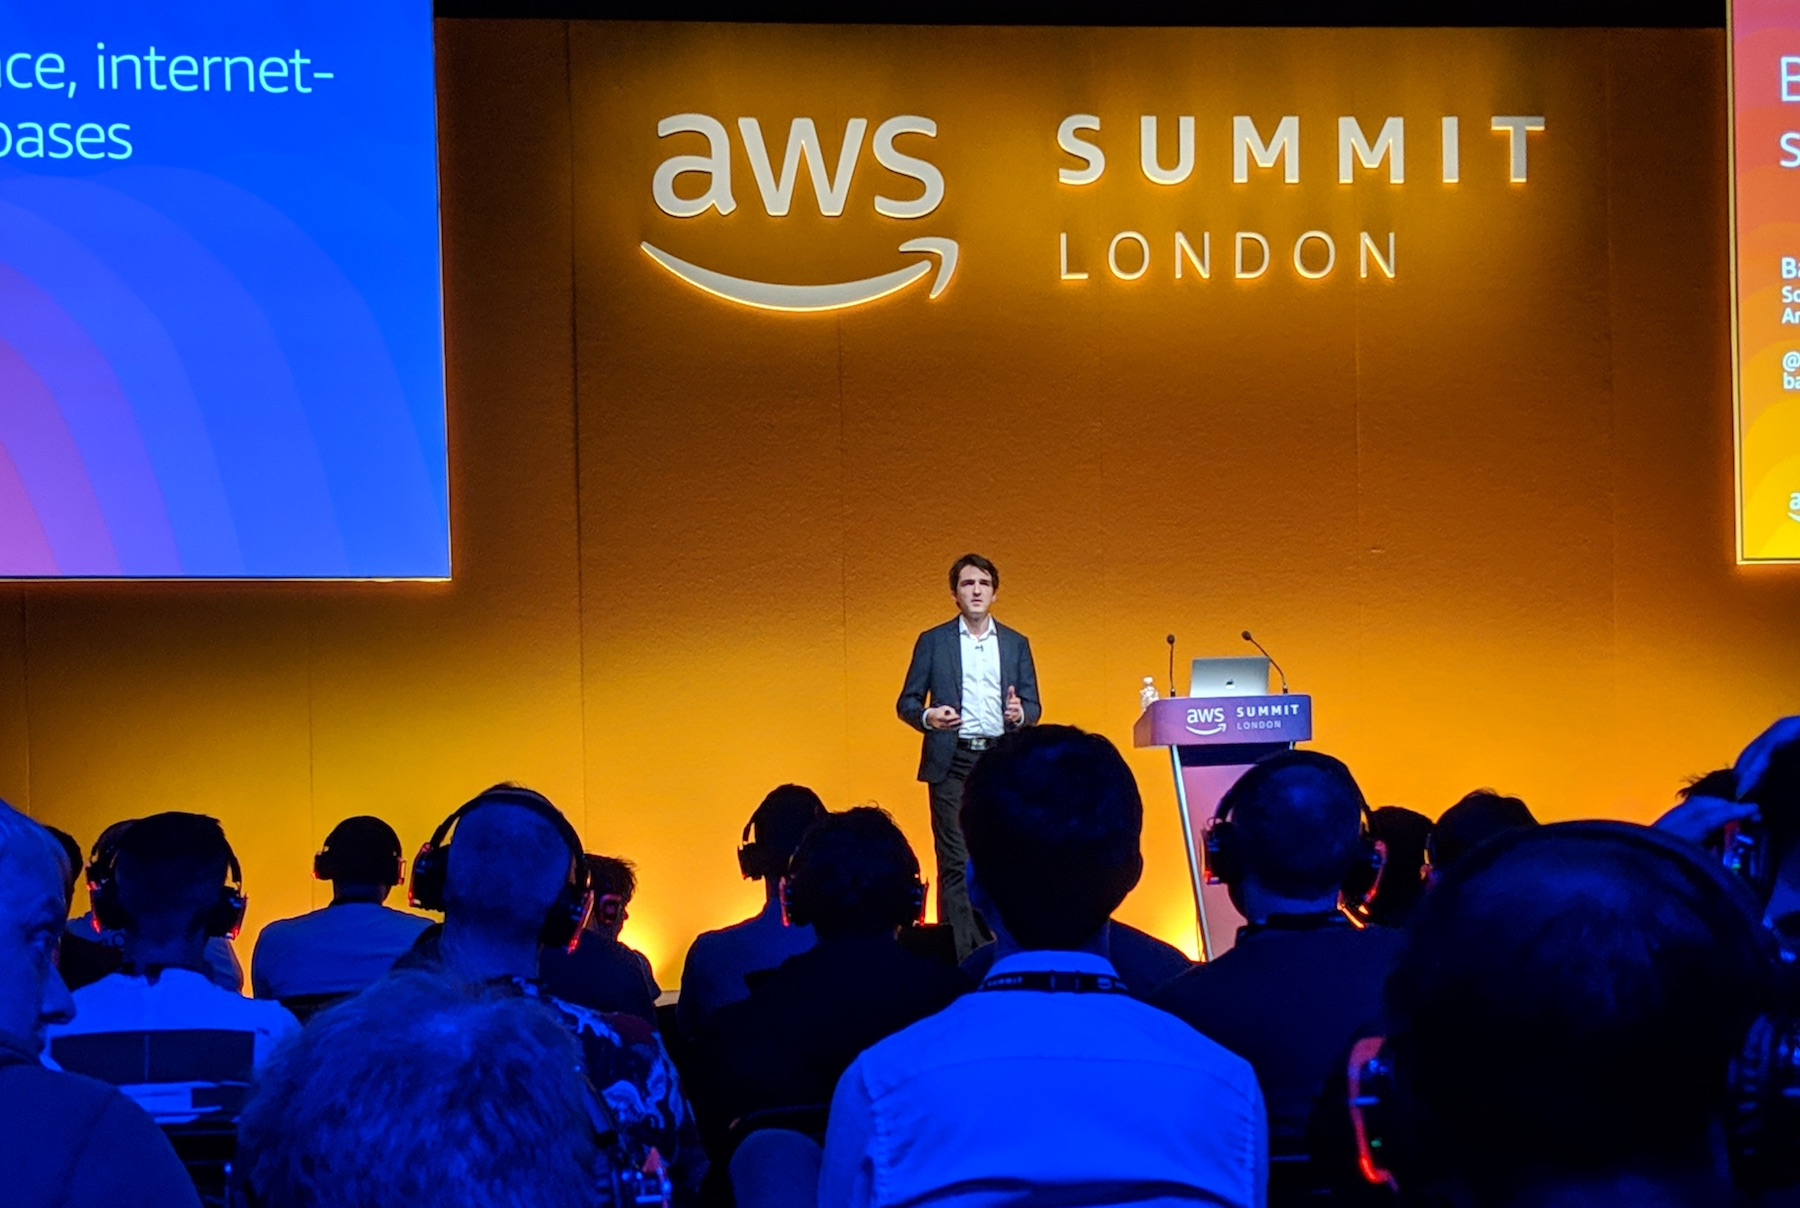 AWS Blockchain summit talk